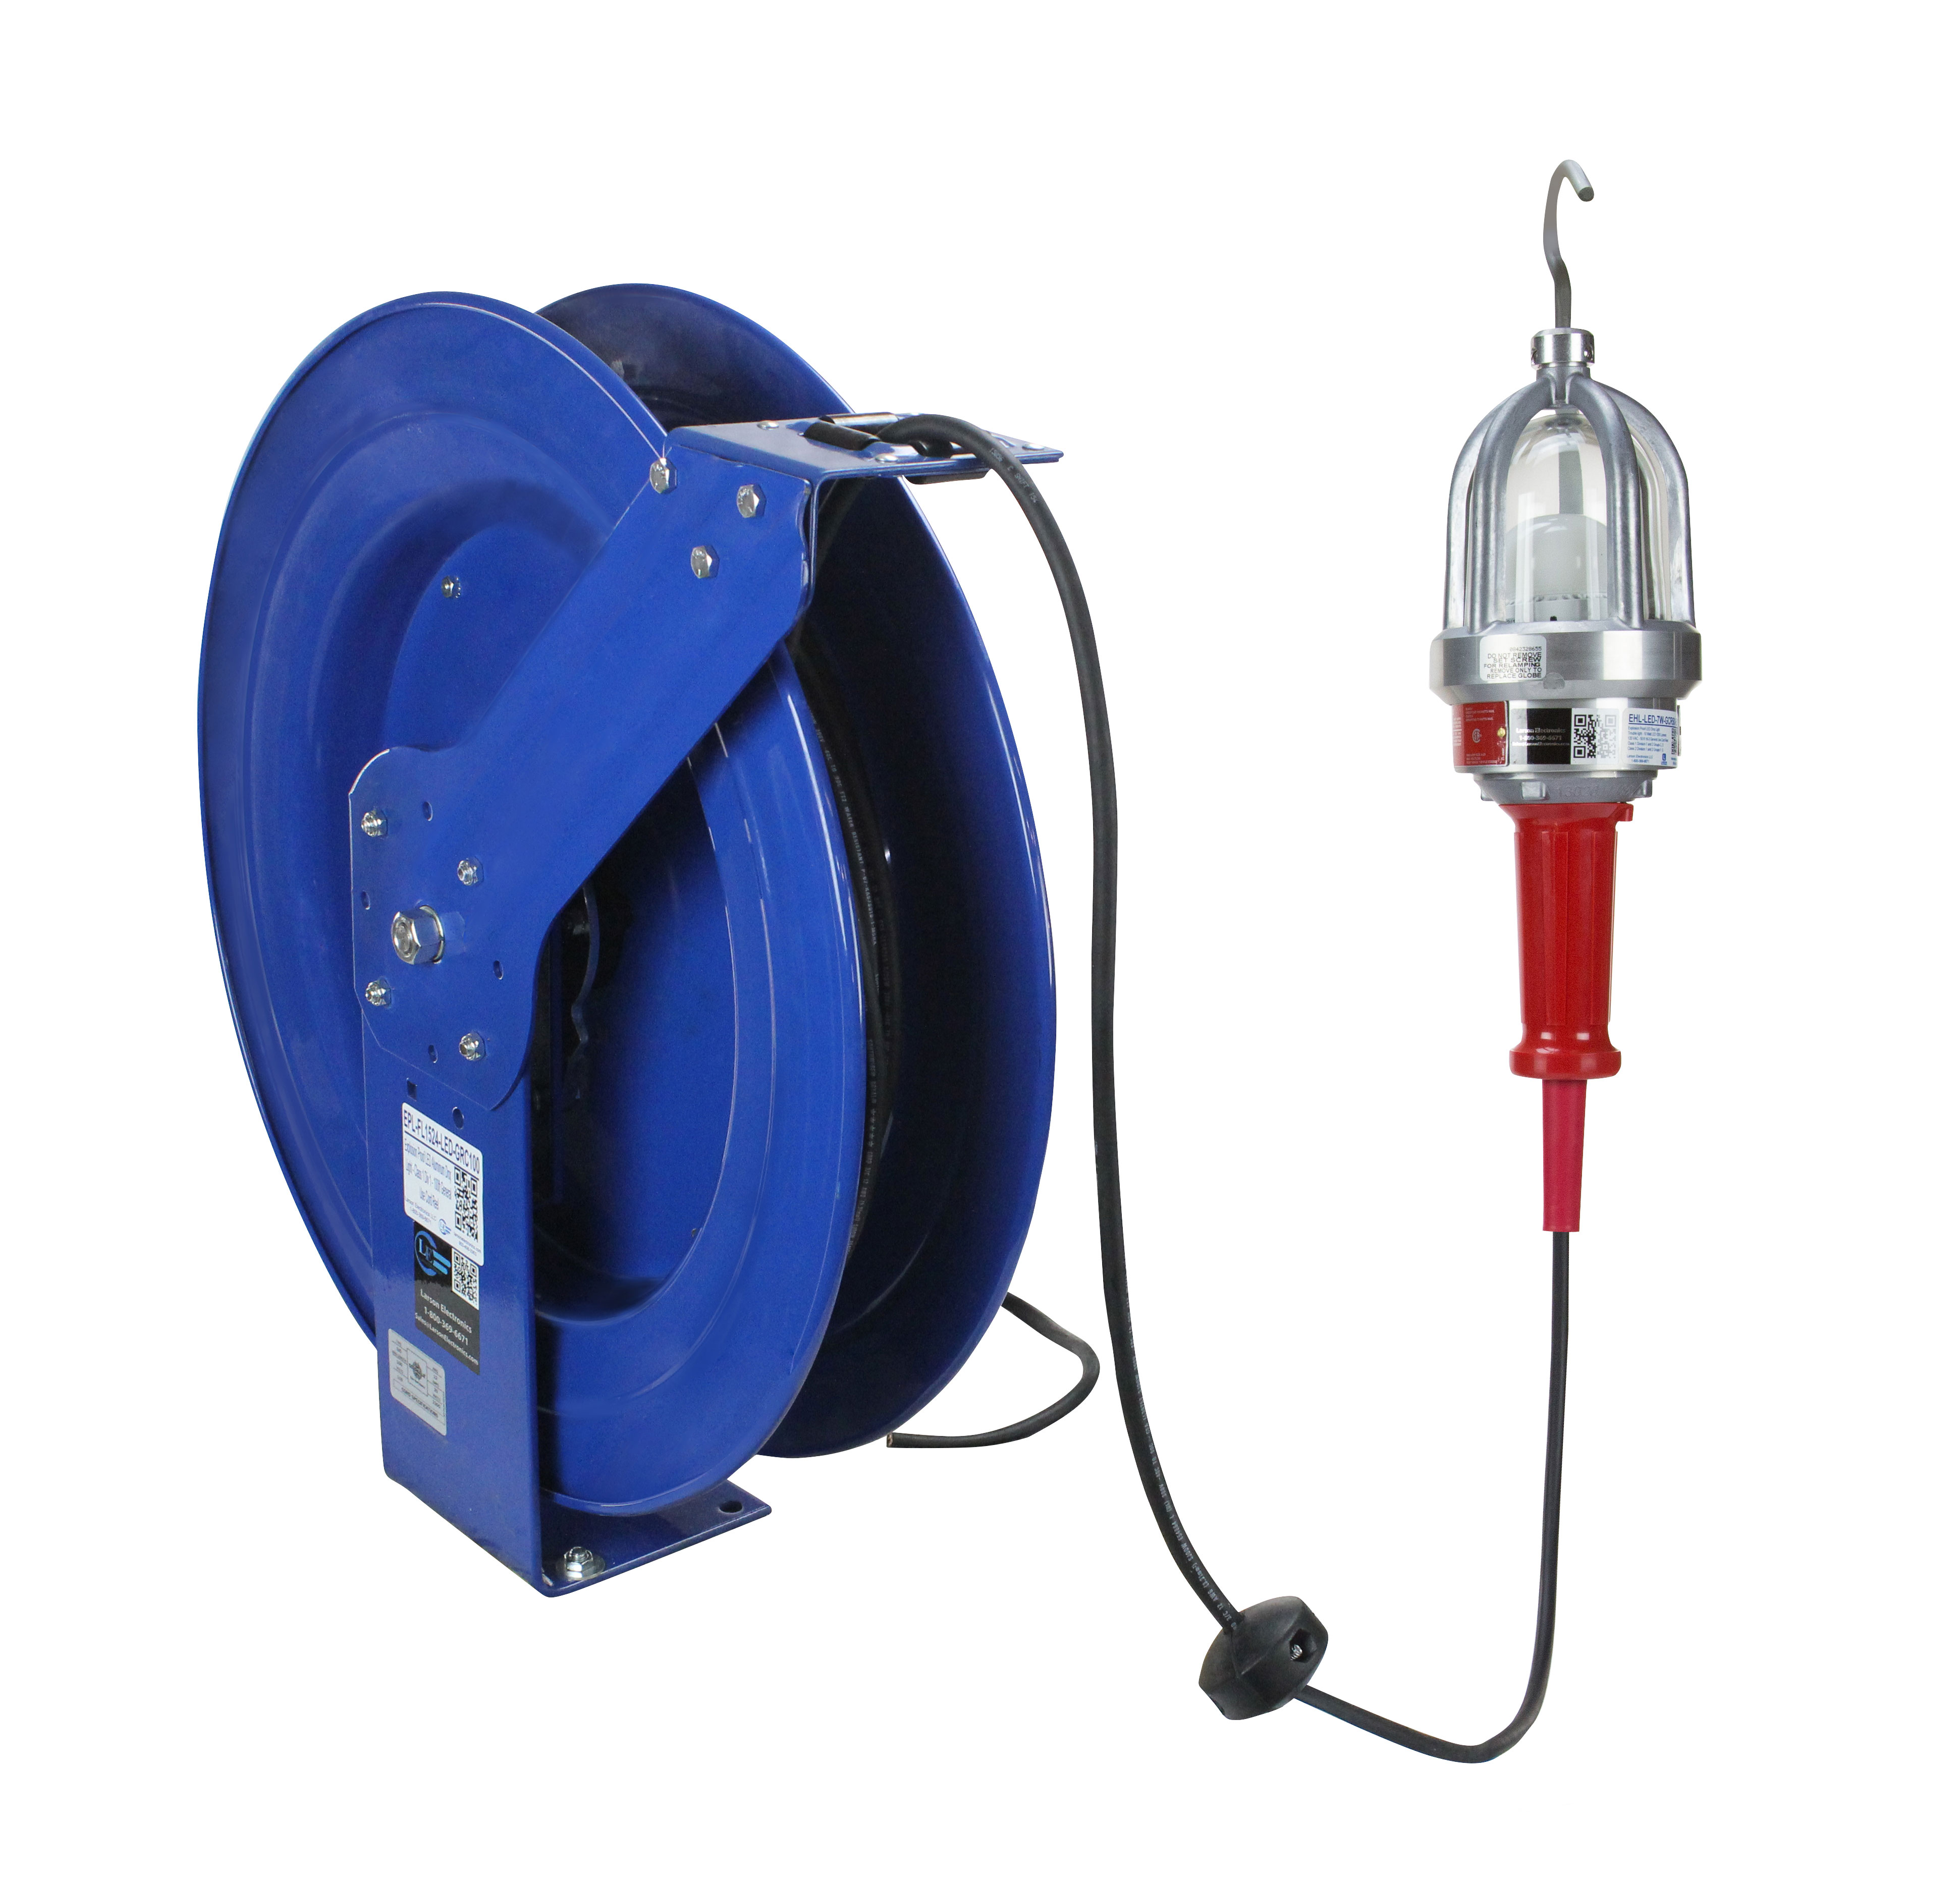 Led Light Cord Reel Retractable Extension W Tritap And Circuit Breaker Prolite Larson Electronics Releases An Drop That Outperforms Traditional Incandescent Lights 3884x3734